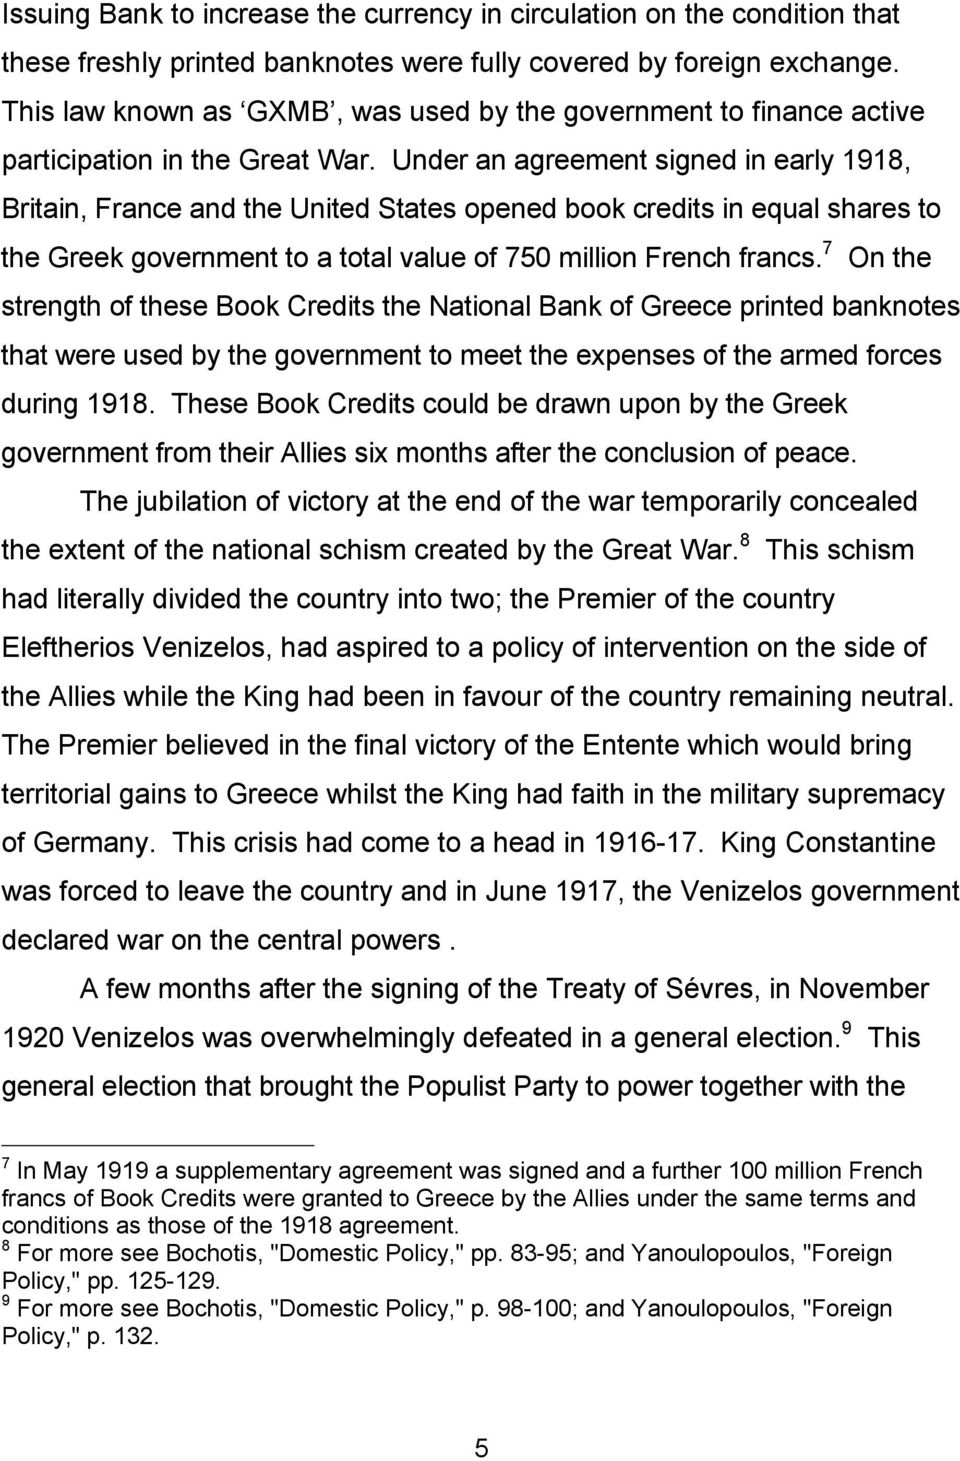 Under an agreement signed in early 1918, Britain, France and the United States opened book credits in equal shares to the Greek government to a total value of 750 million French francs.